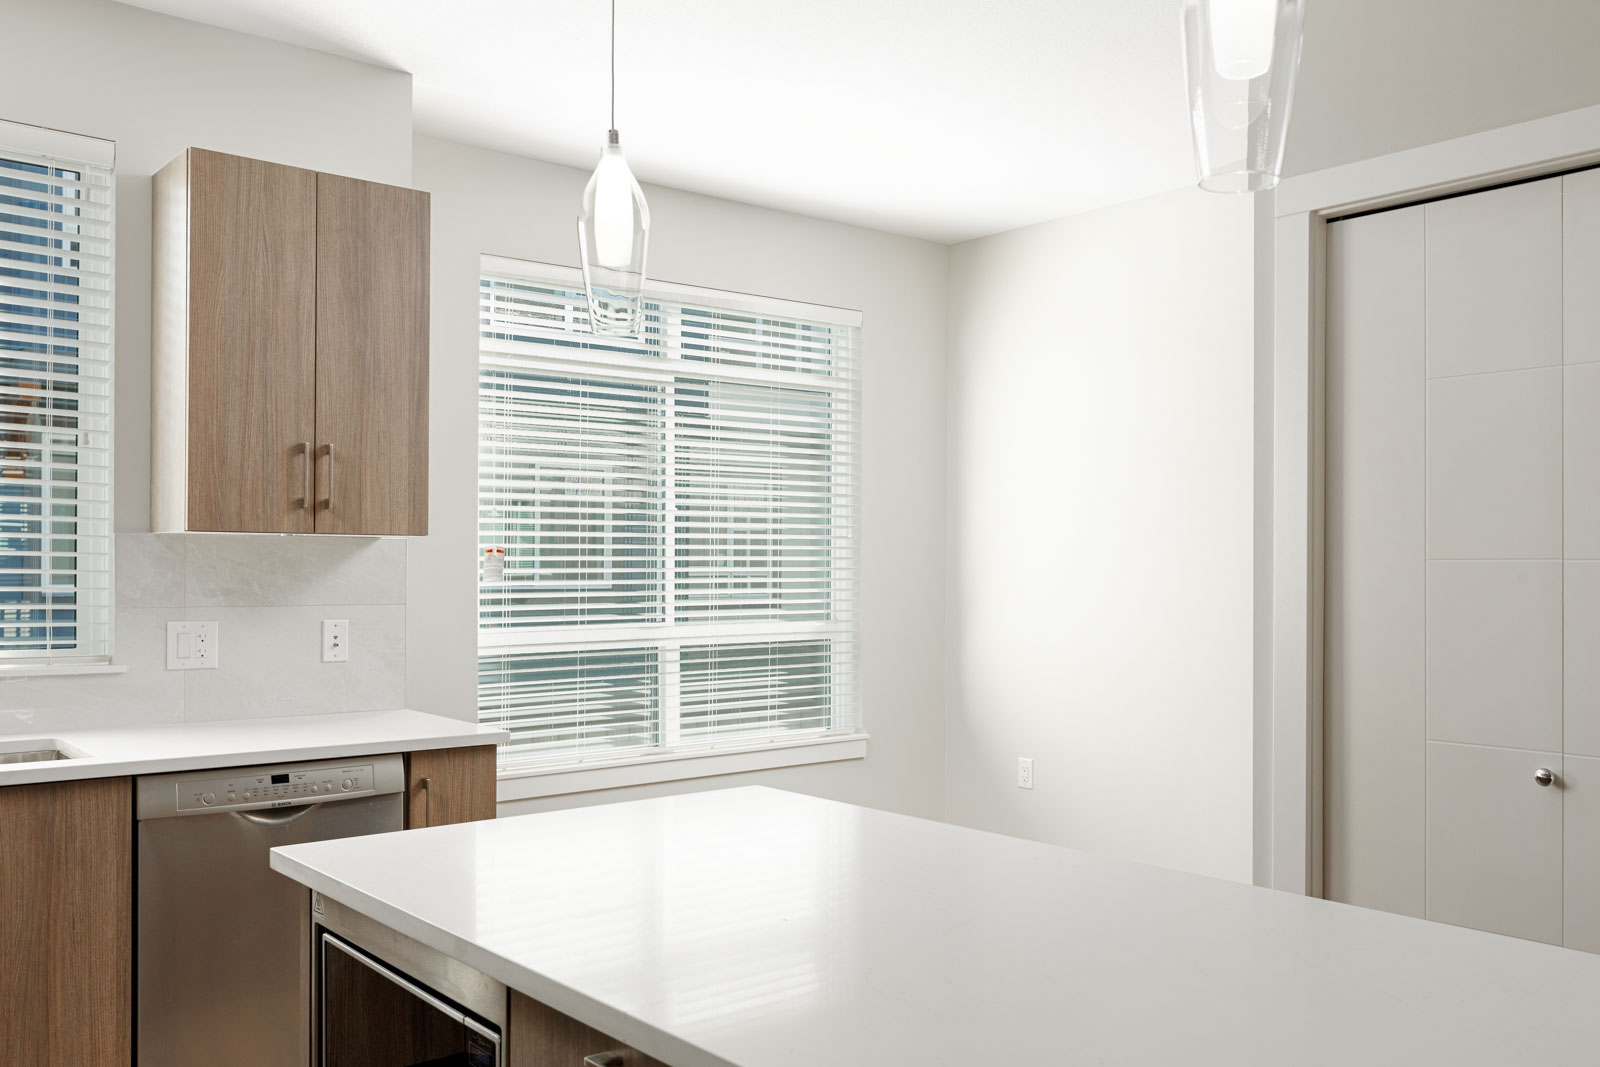 Kitchen area in Richmond luxury rental townhome.